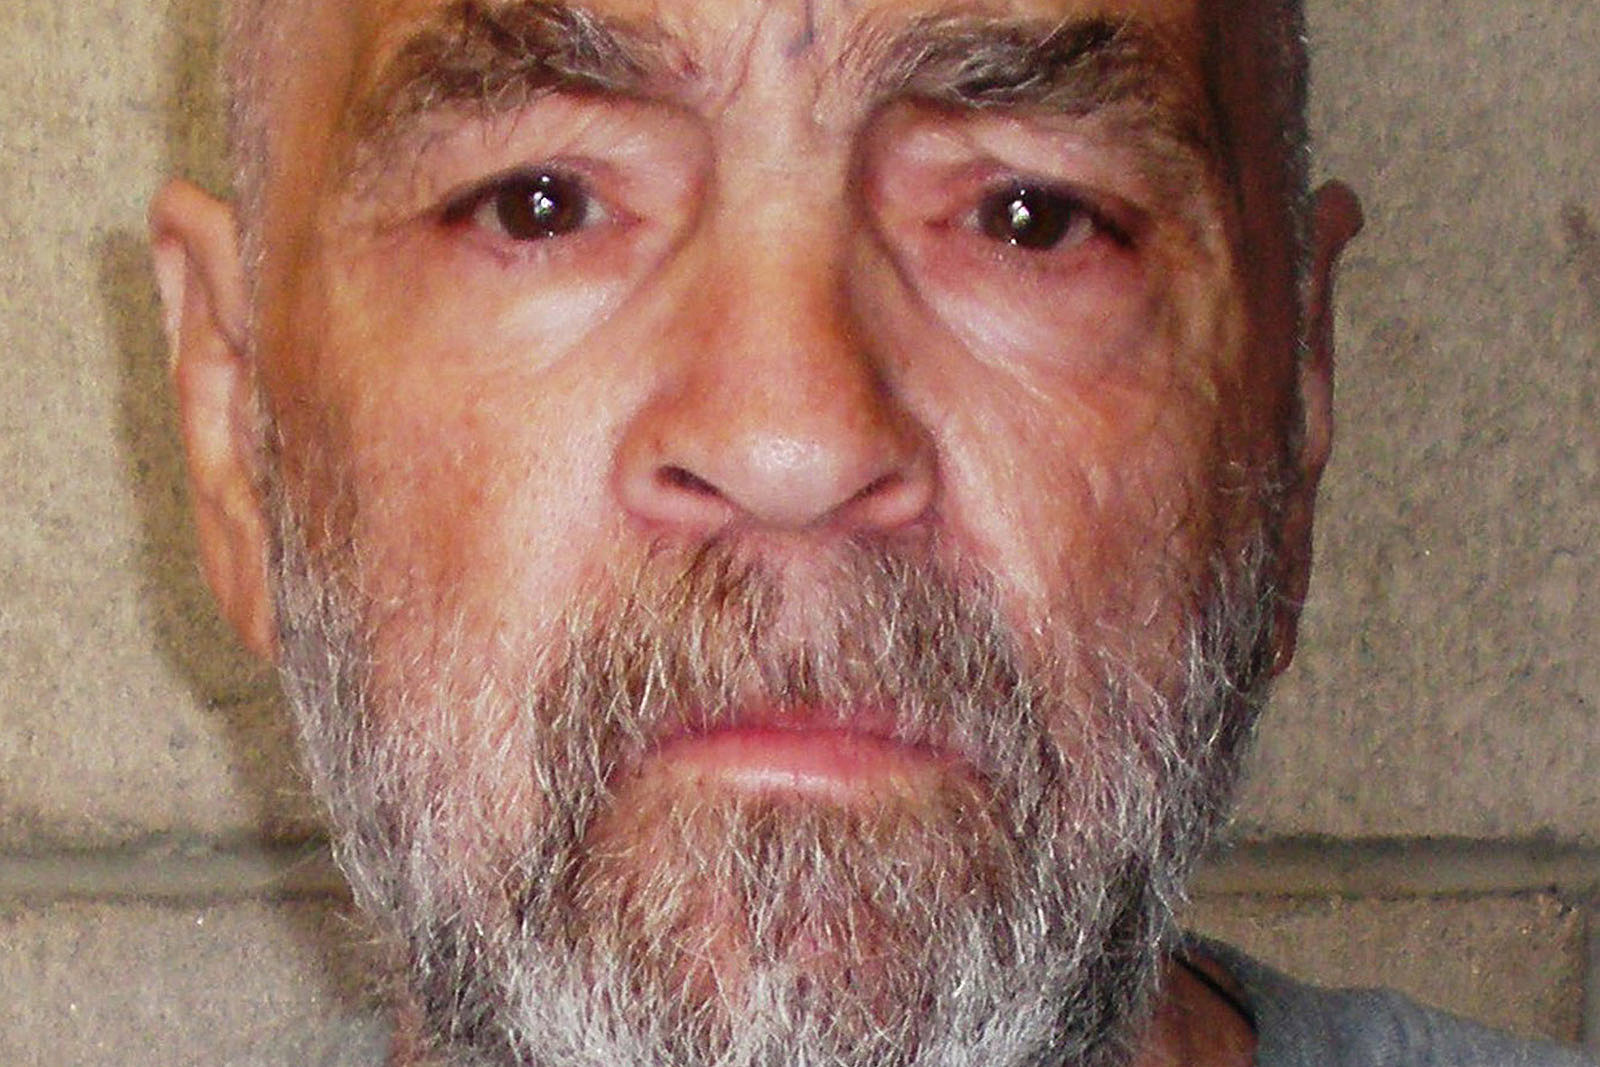 Charles Manson's Cause of Death Confirmed